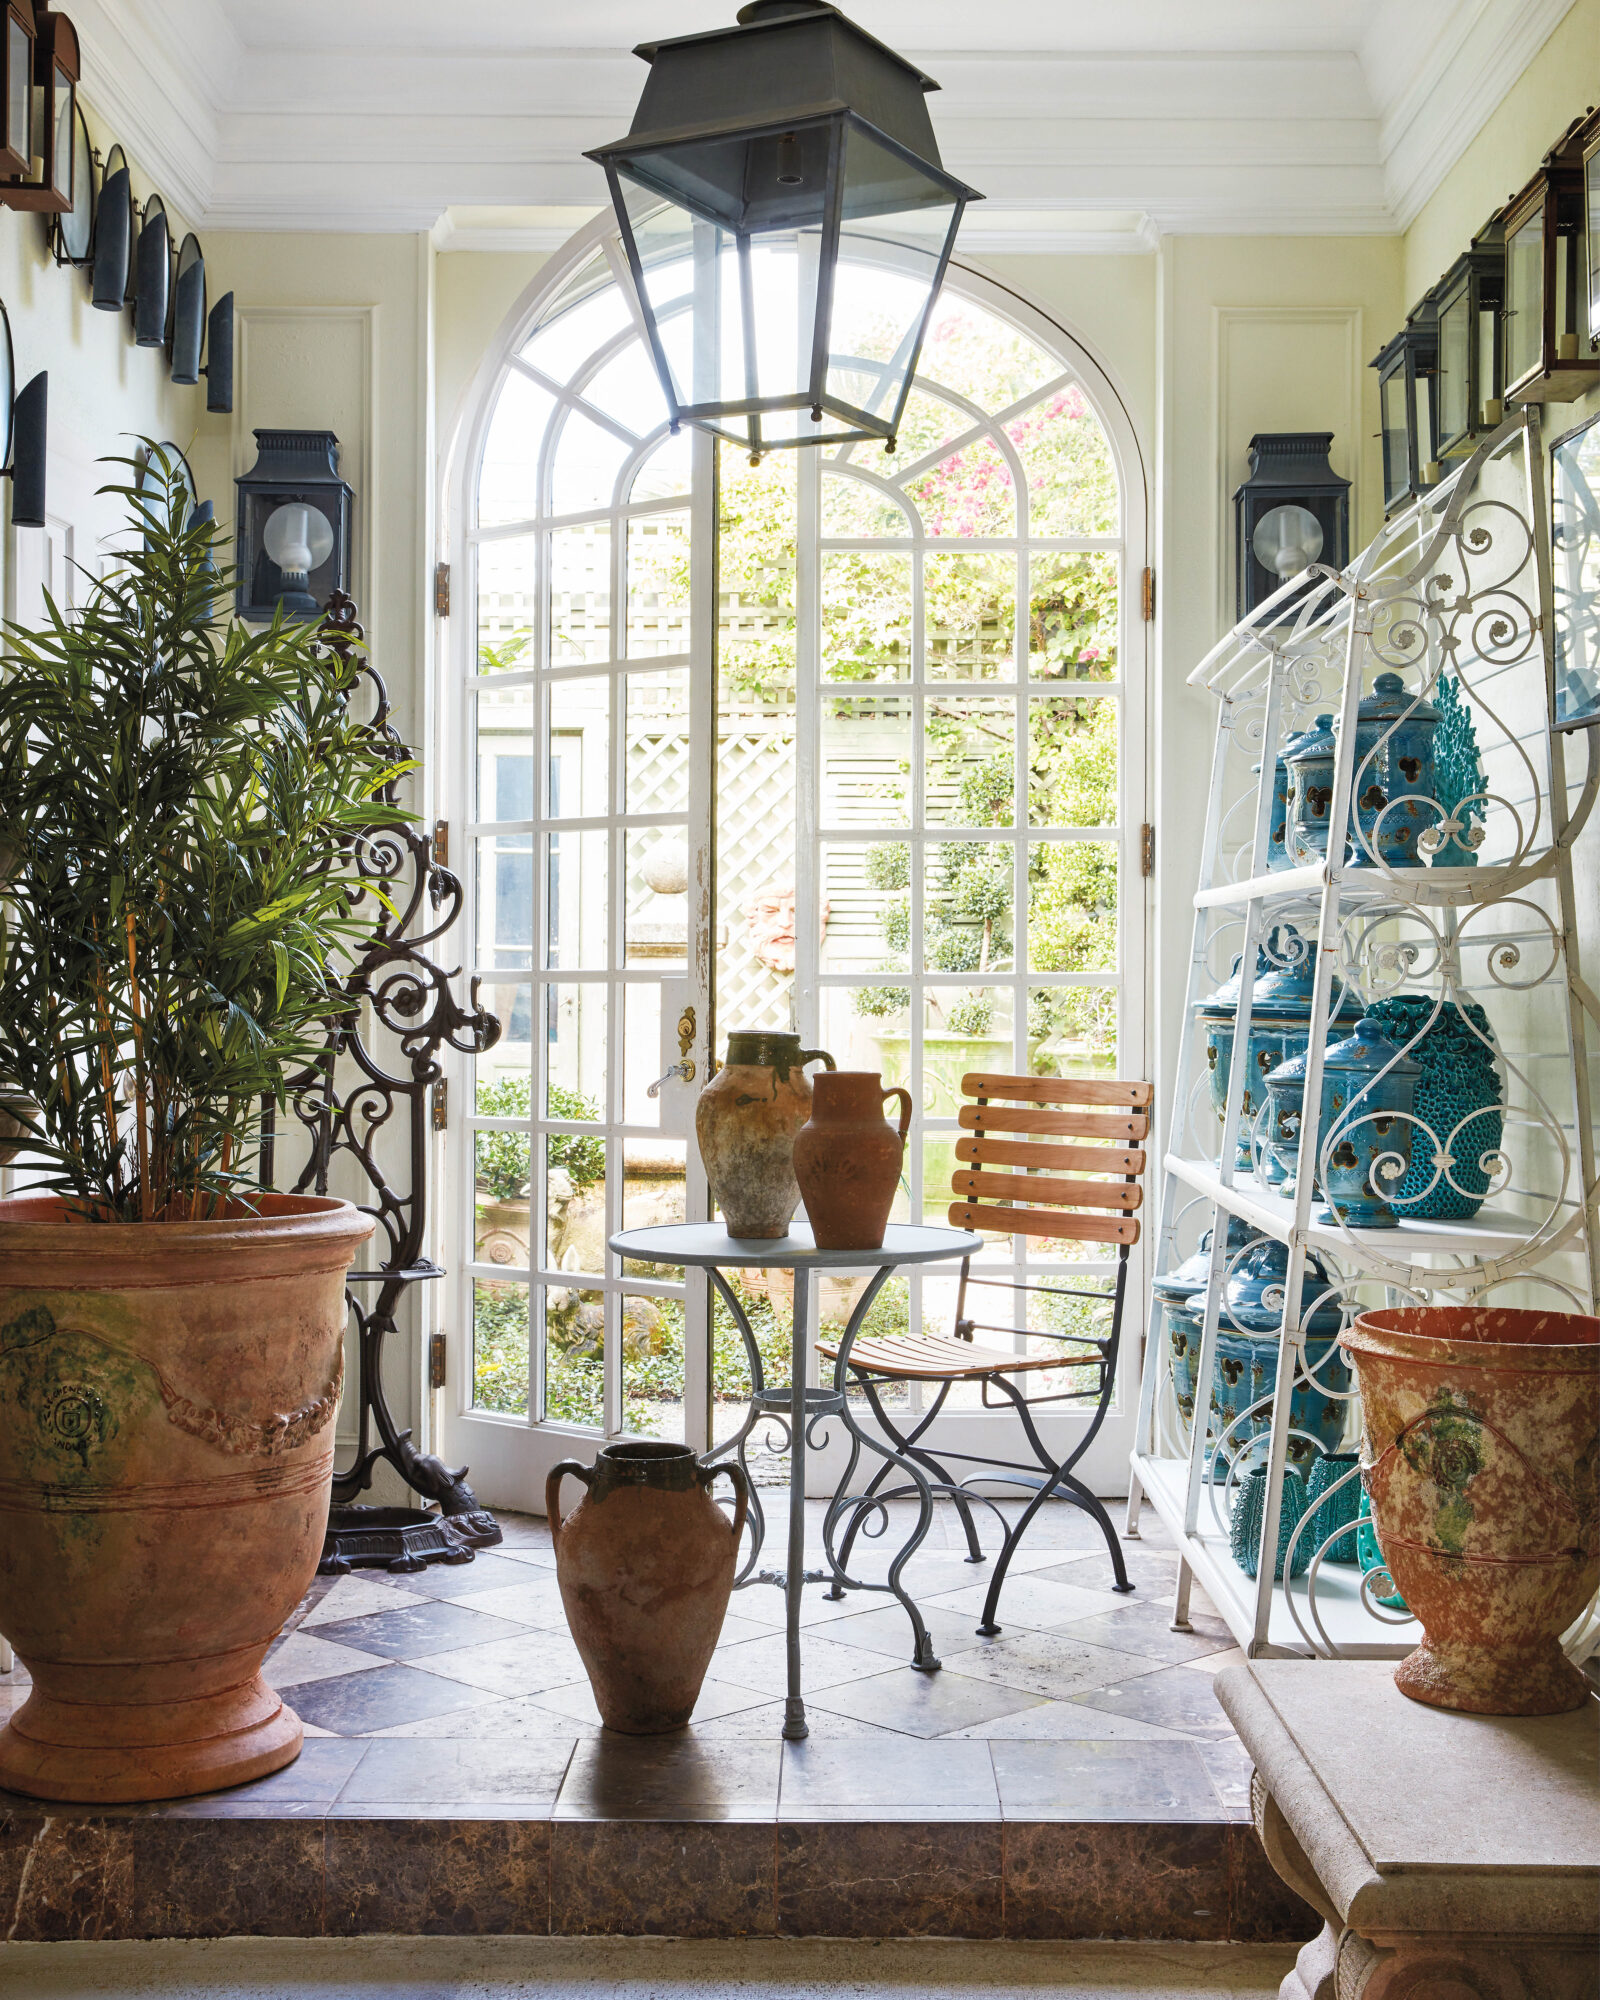 Add Something Special To Your Garden With A European Antique (Or Two)